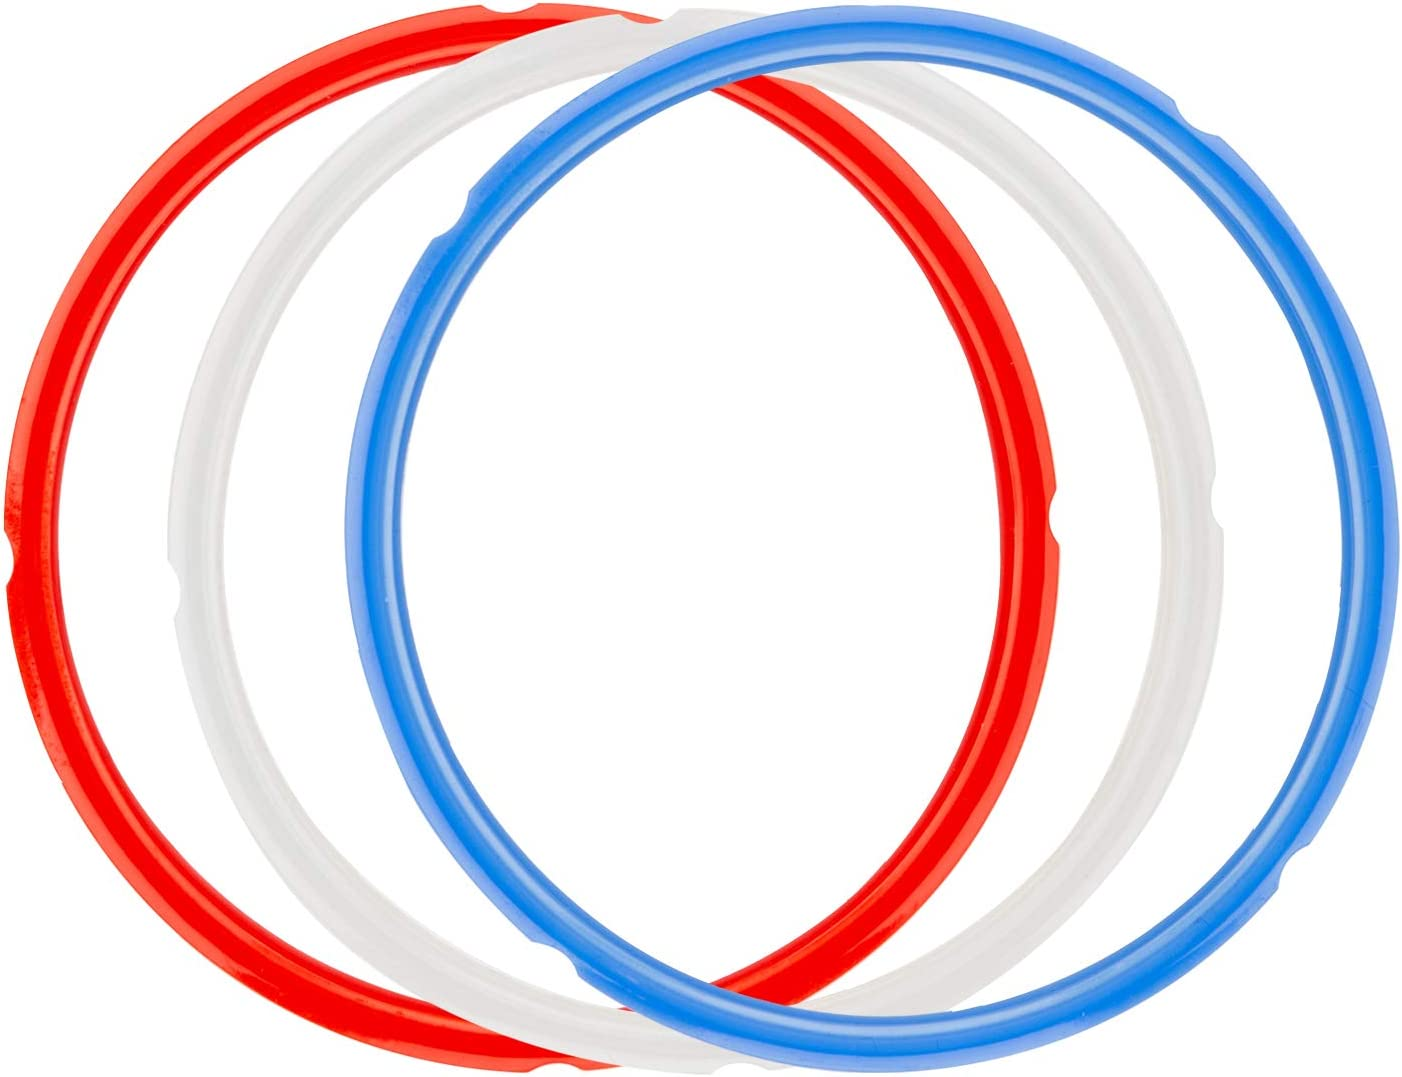 ZLR Sealing Ring for Instant Pot 5 qt / 6 Quart Fits IP-LUX 60,IP-Duo 60,IP-Duo Plus 60 Easy Clean Food Grade Silicone 3 Pack (Red,Clear and Blue)